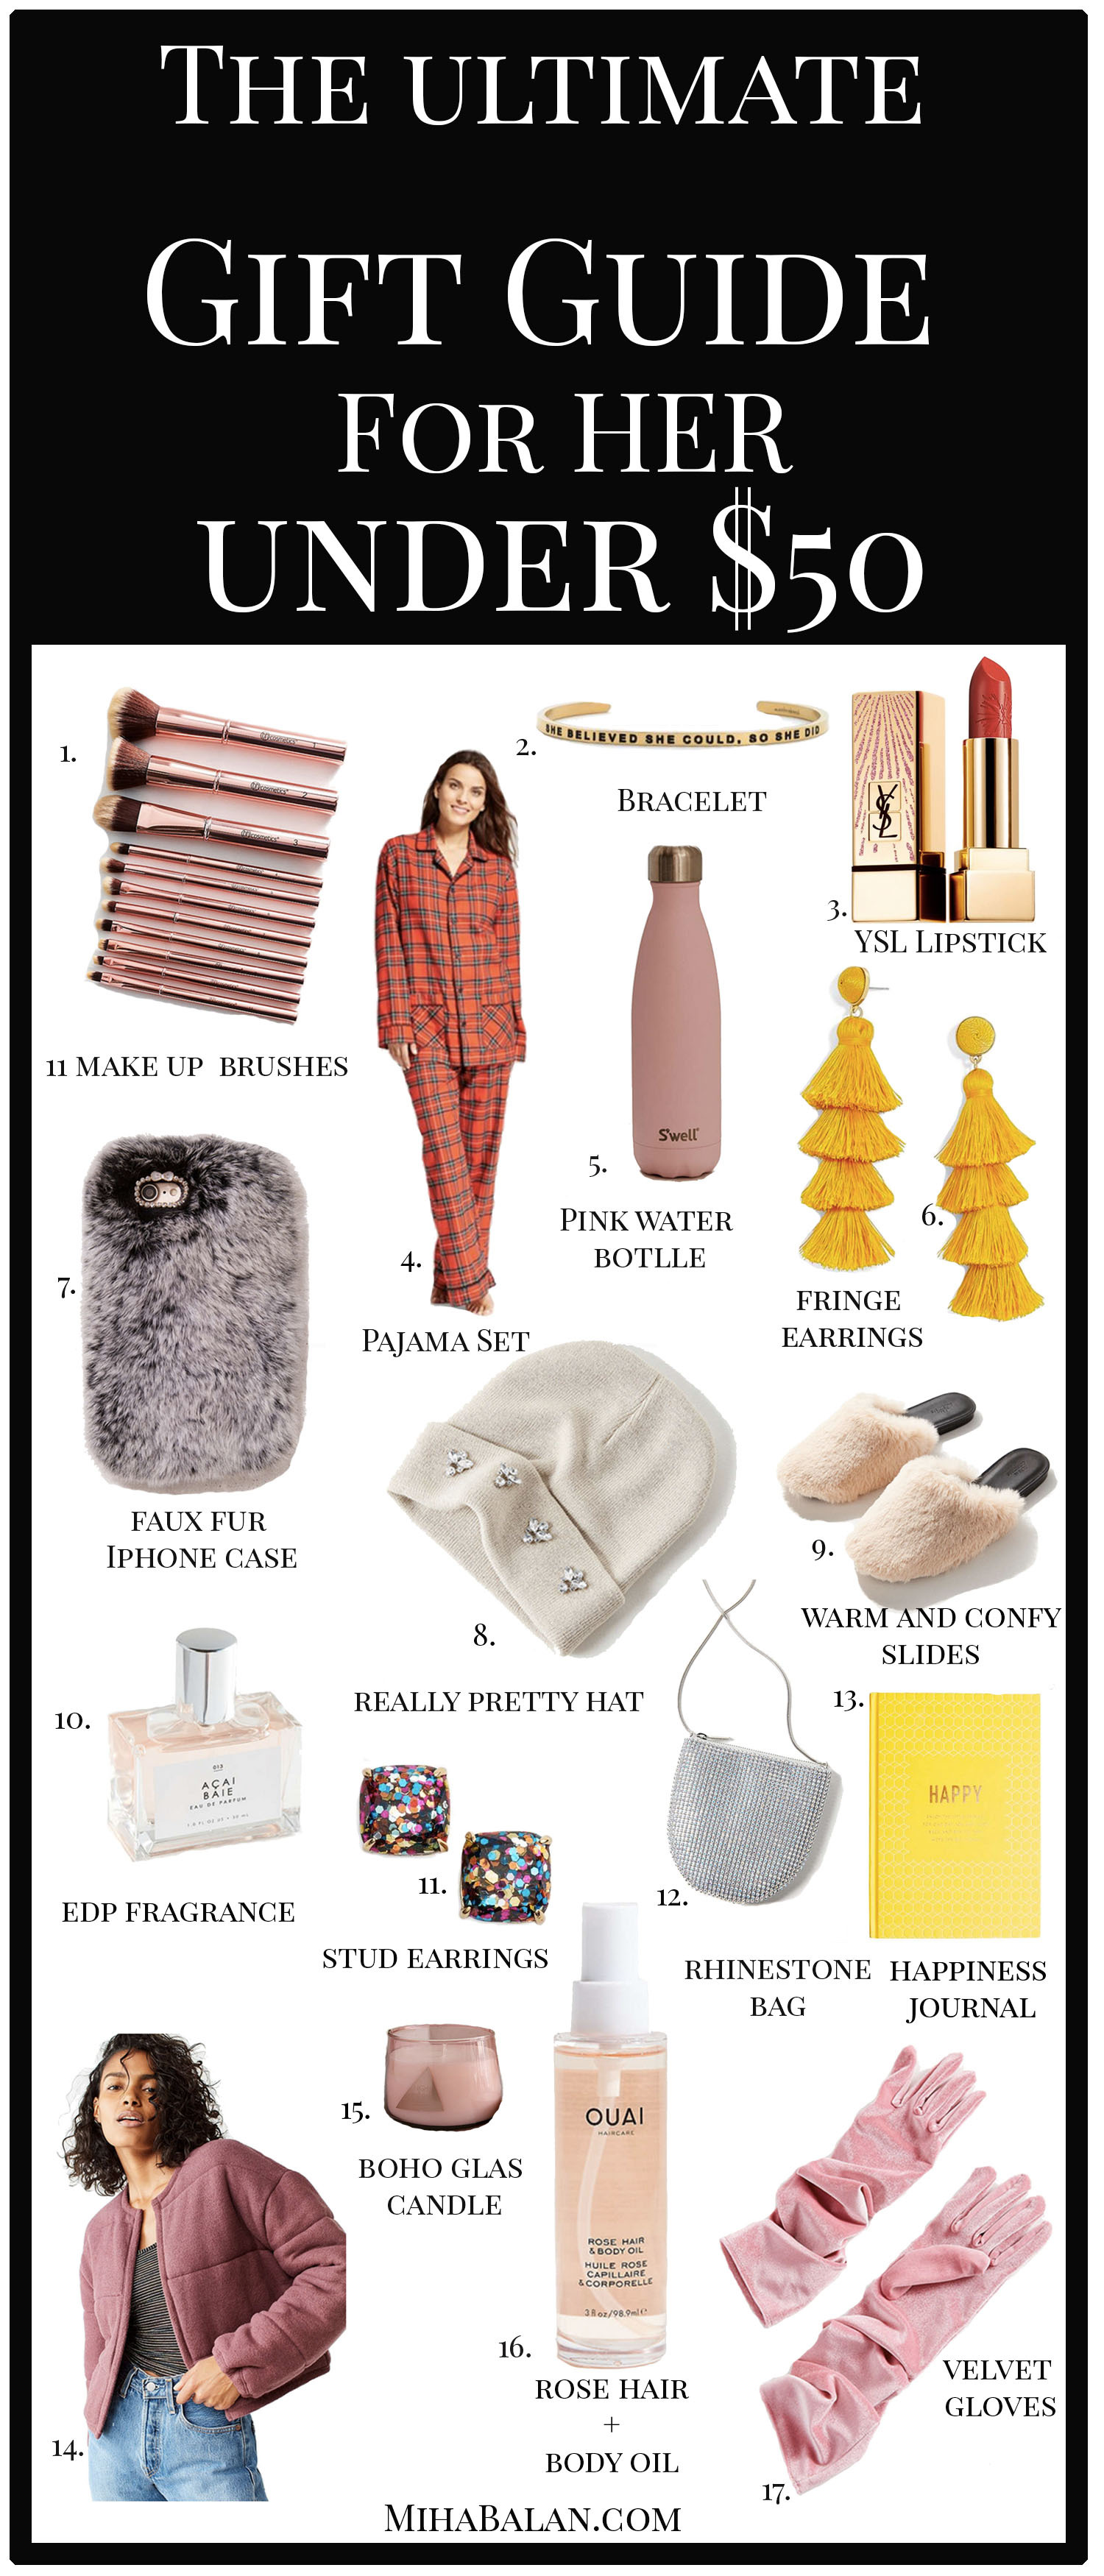 the gift guide for her under $50the gift guide for her under $50